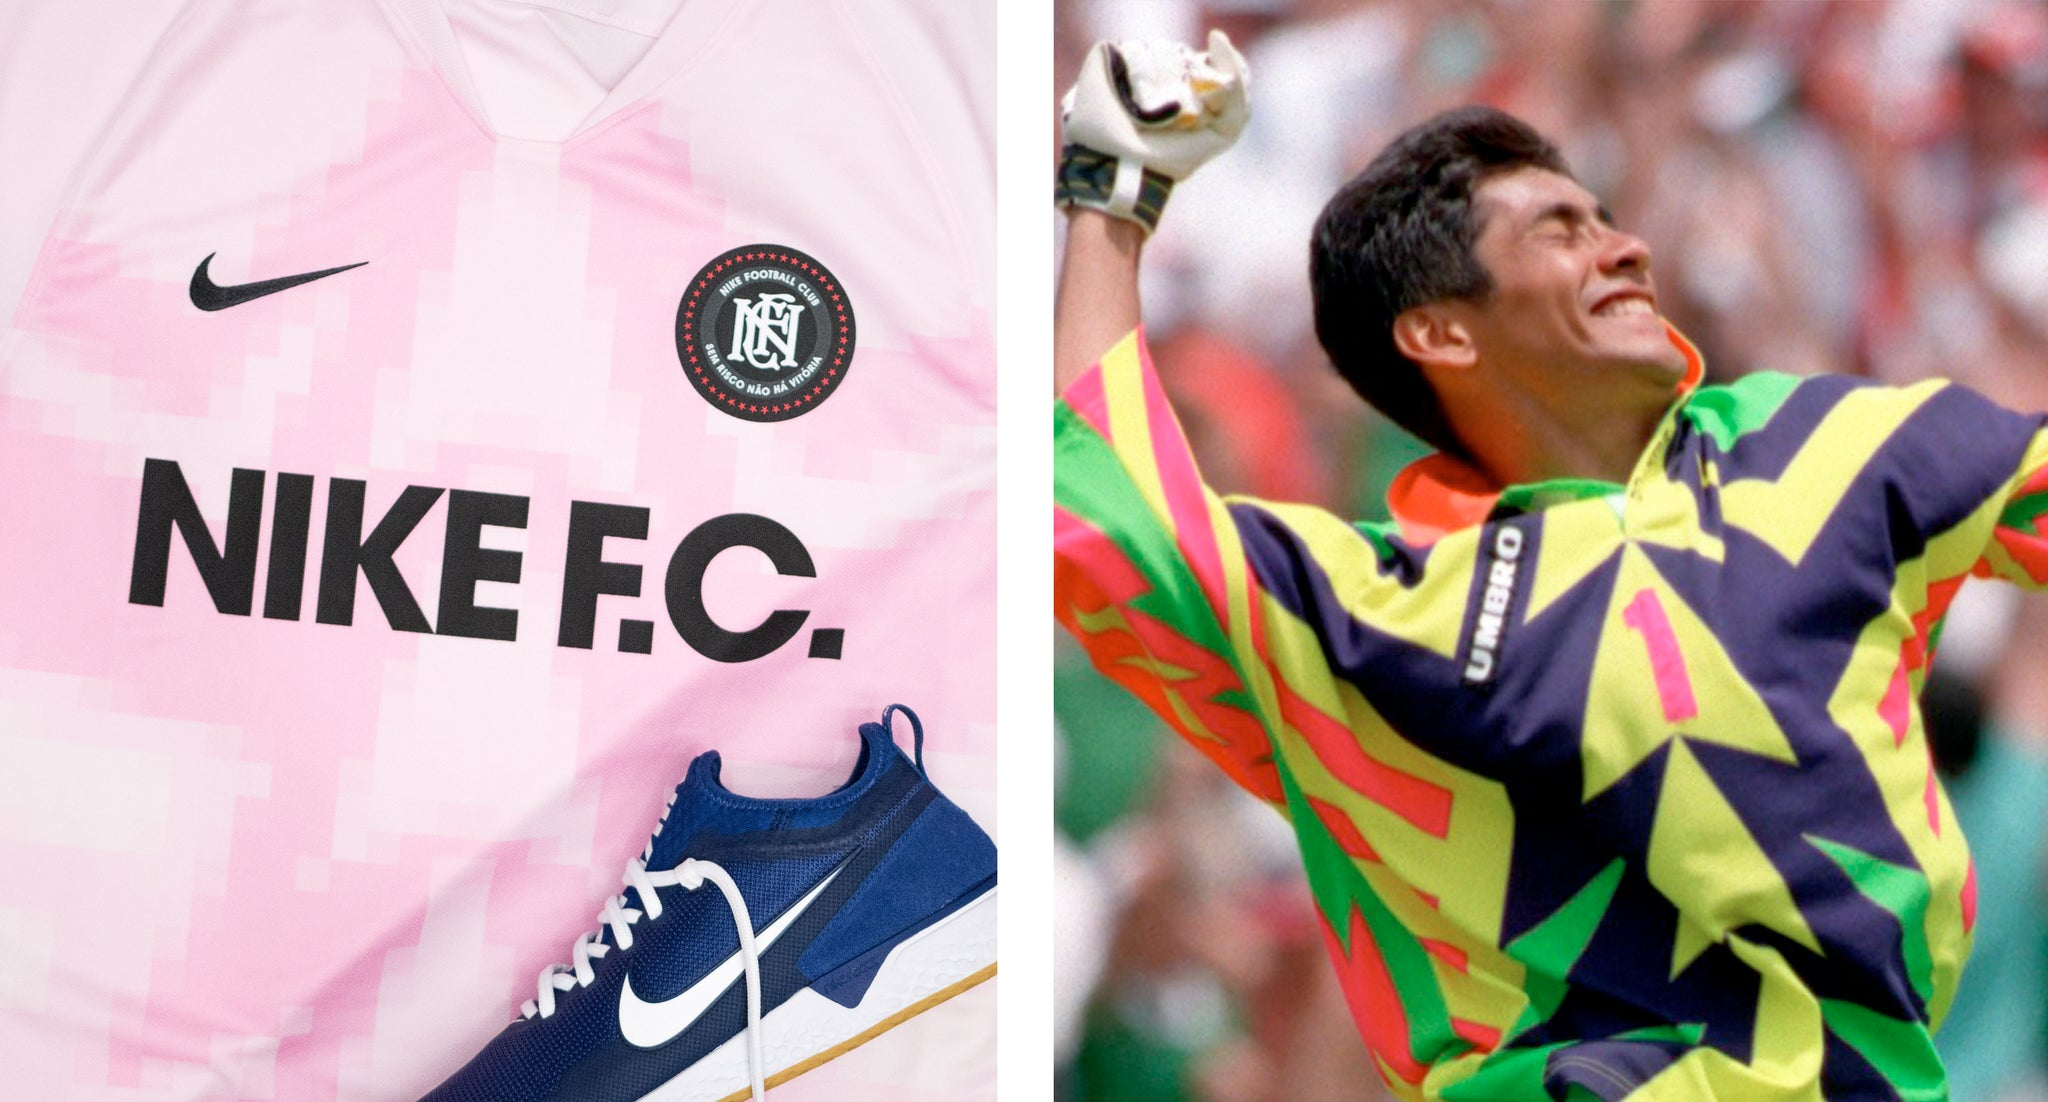 The Nike F C Jerseys Inspired By The Jorge Campos Mexican World Cup Je Ultra Football